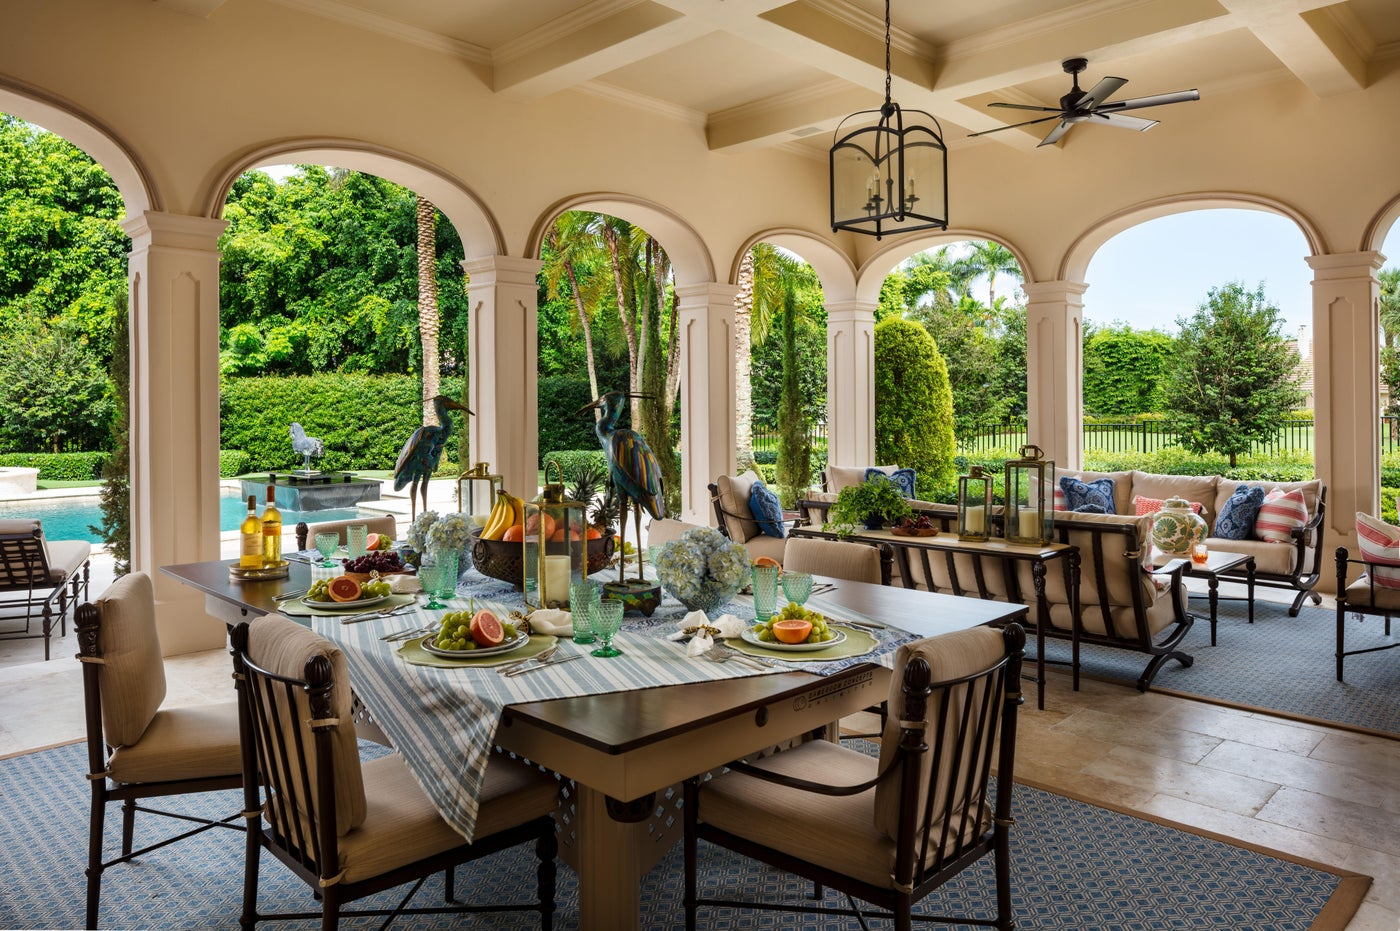 Outdoor dining area in Palm Beach Estate.